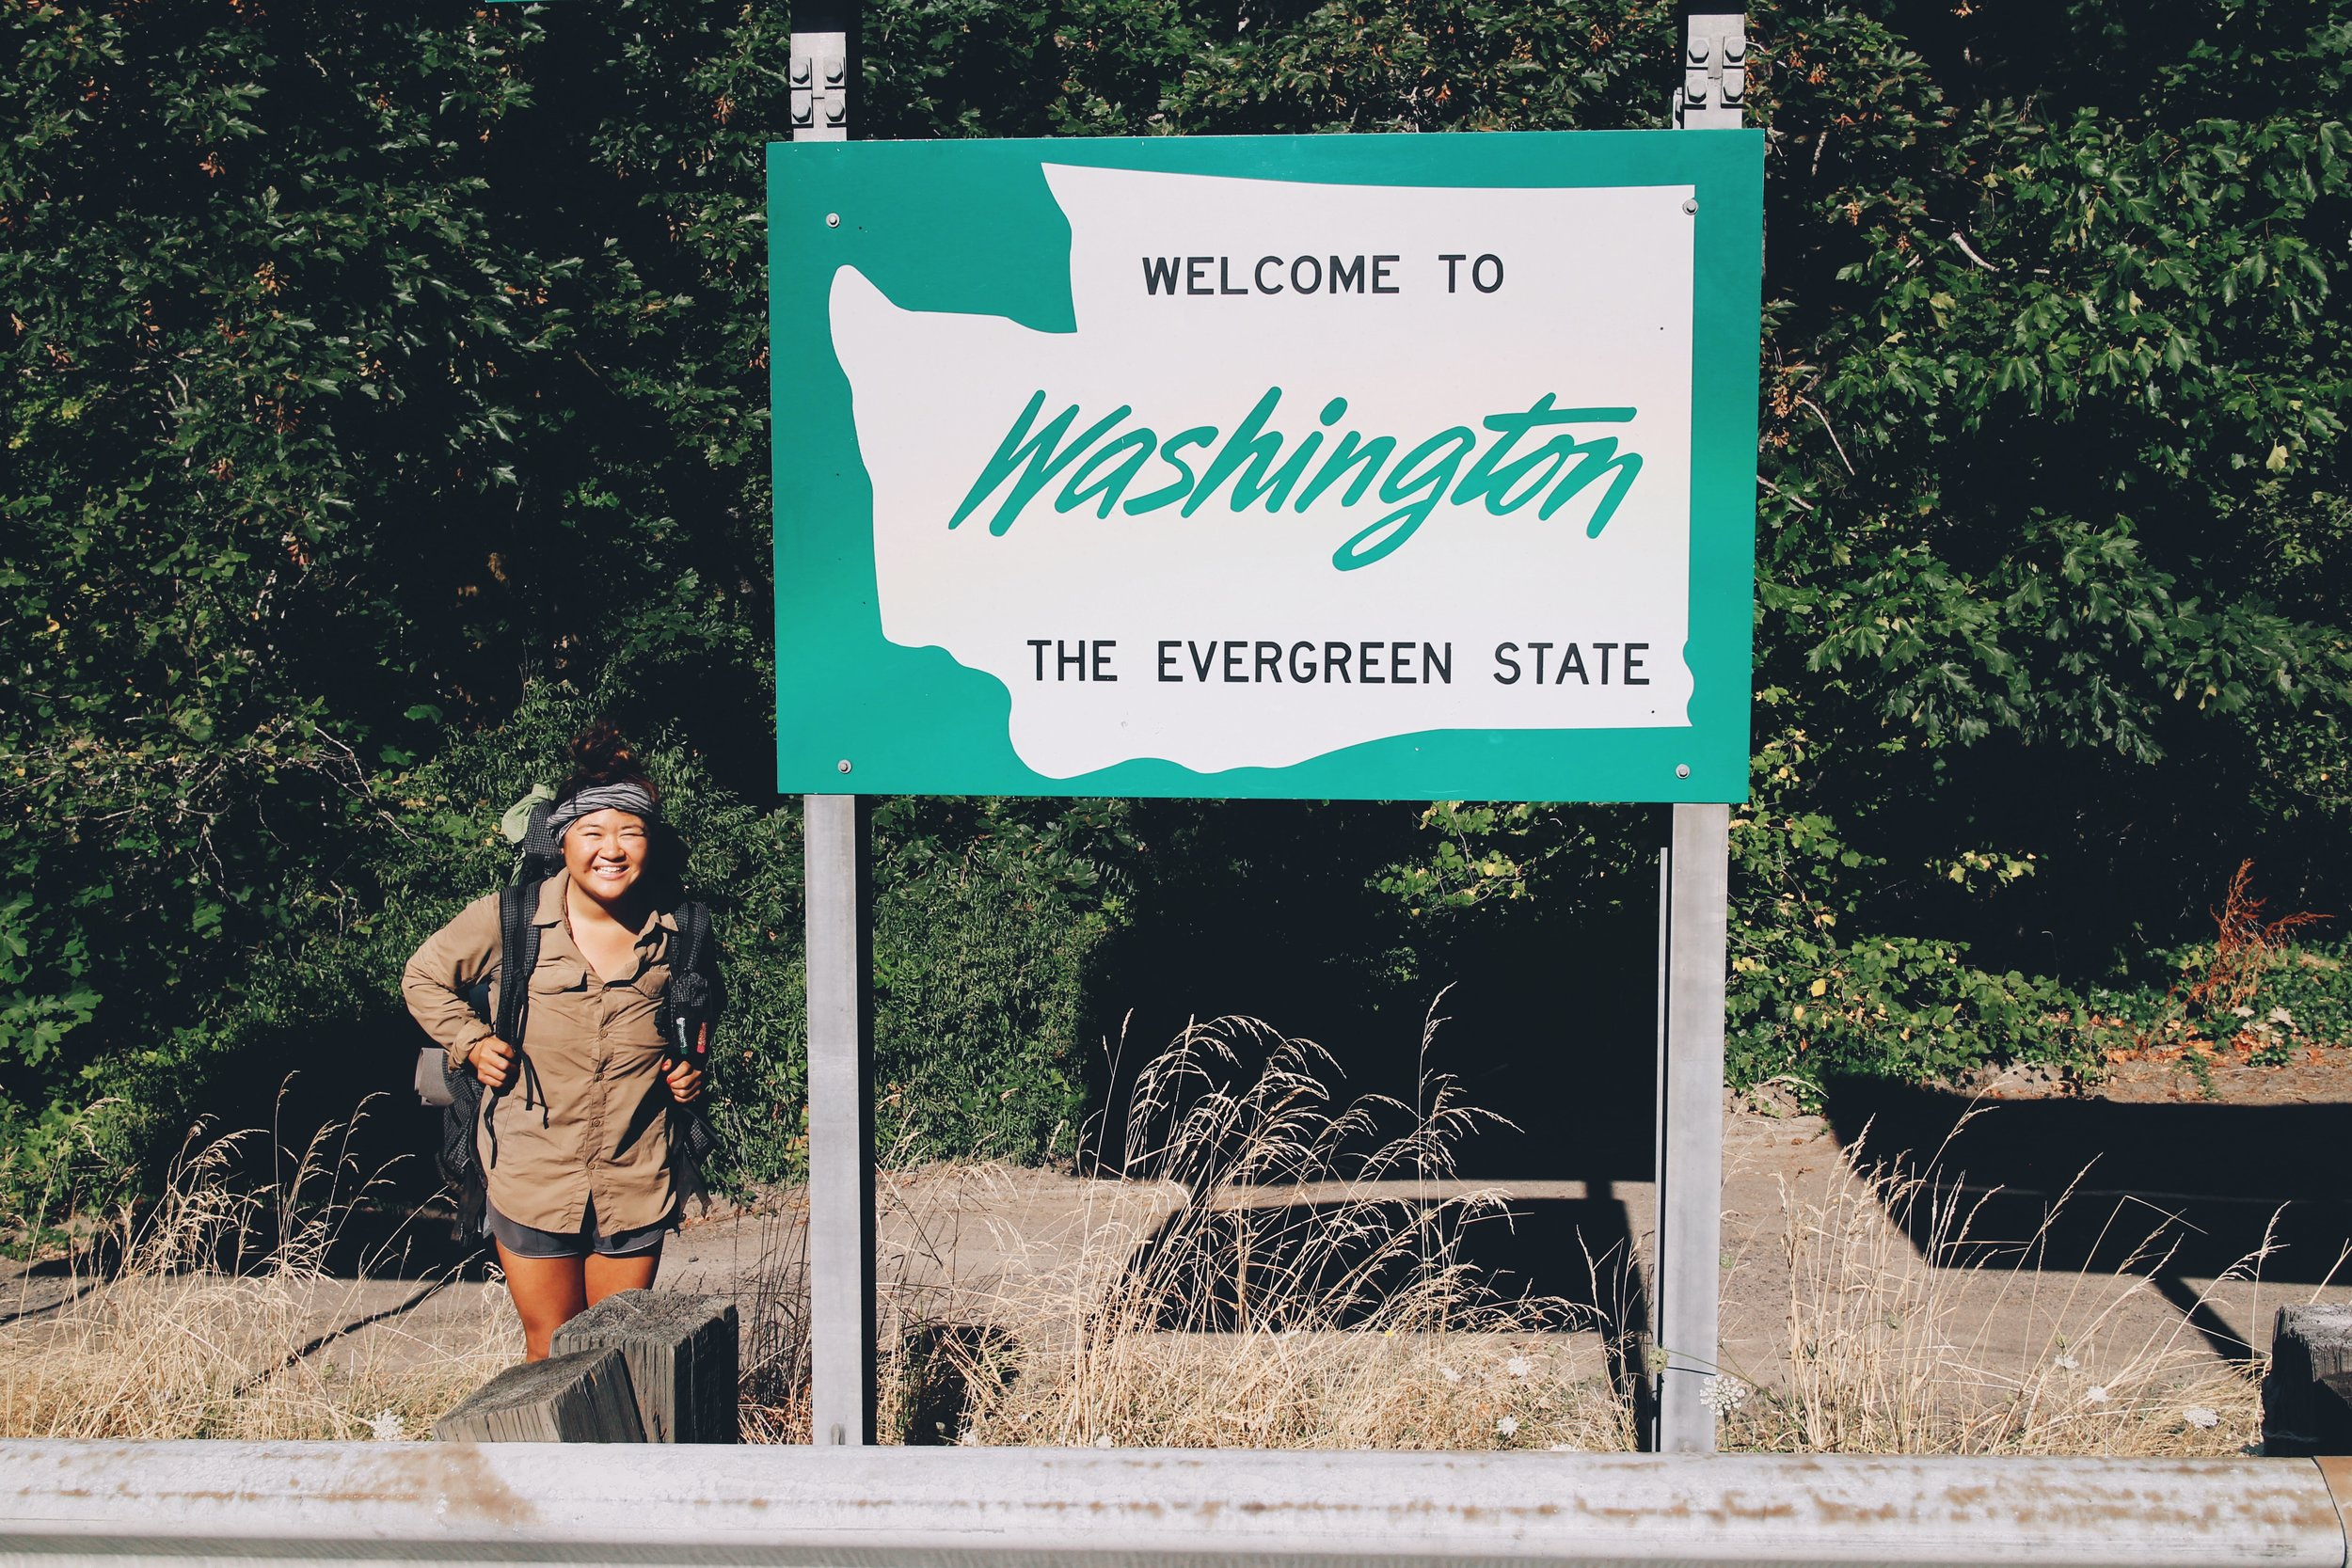 yay WA! Now back to or for the weekend.